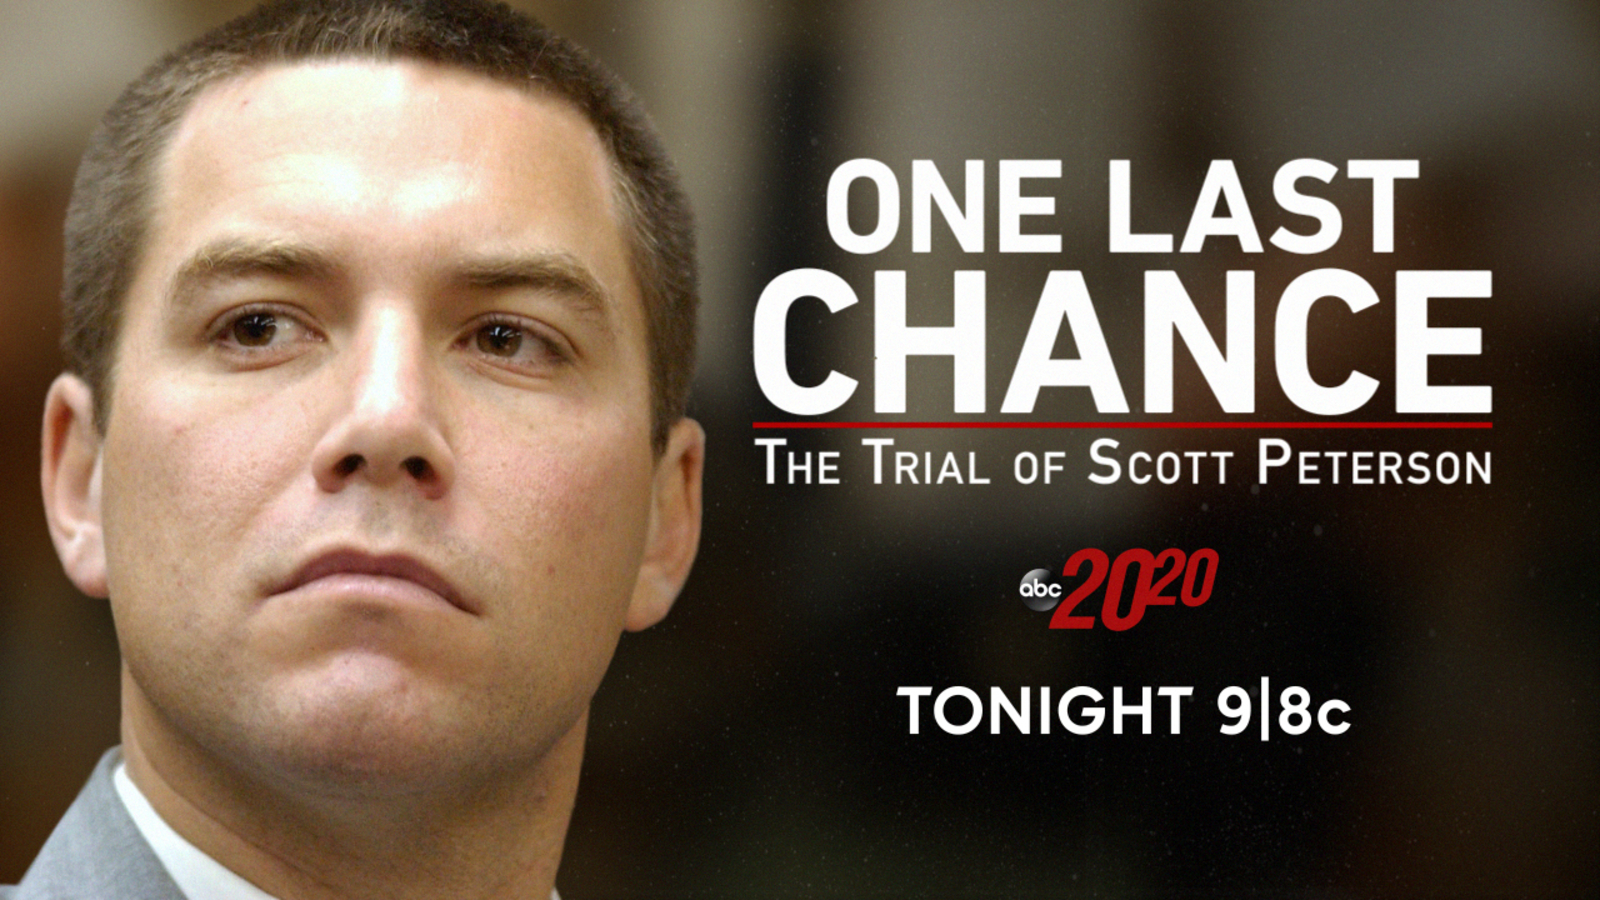 Almost 2 decades after being convicted of pregnant wife's murder, Scott Peterson seeks new trial